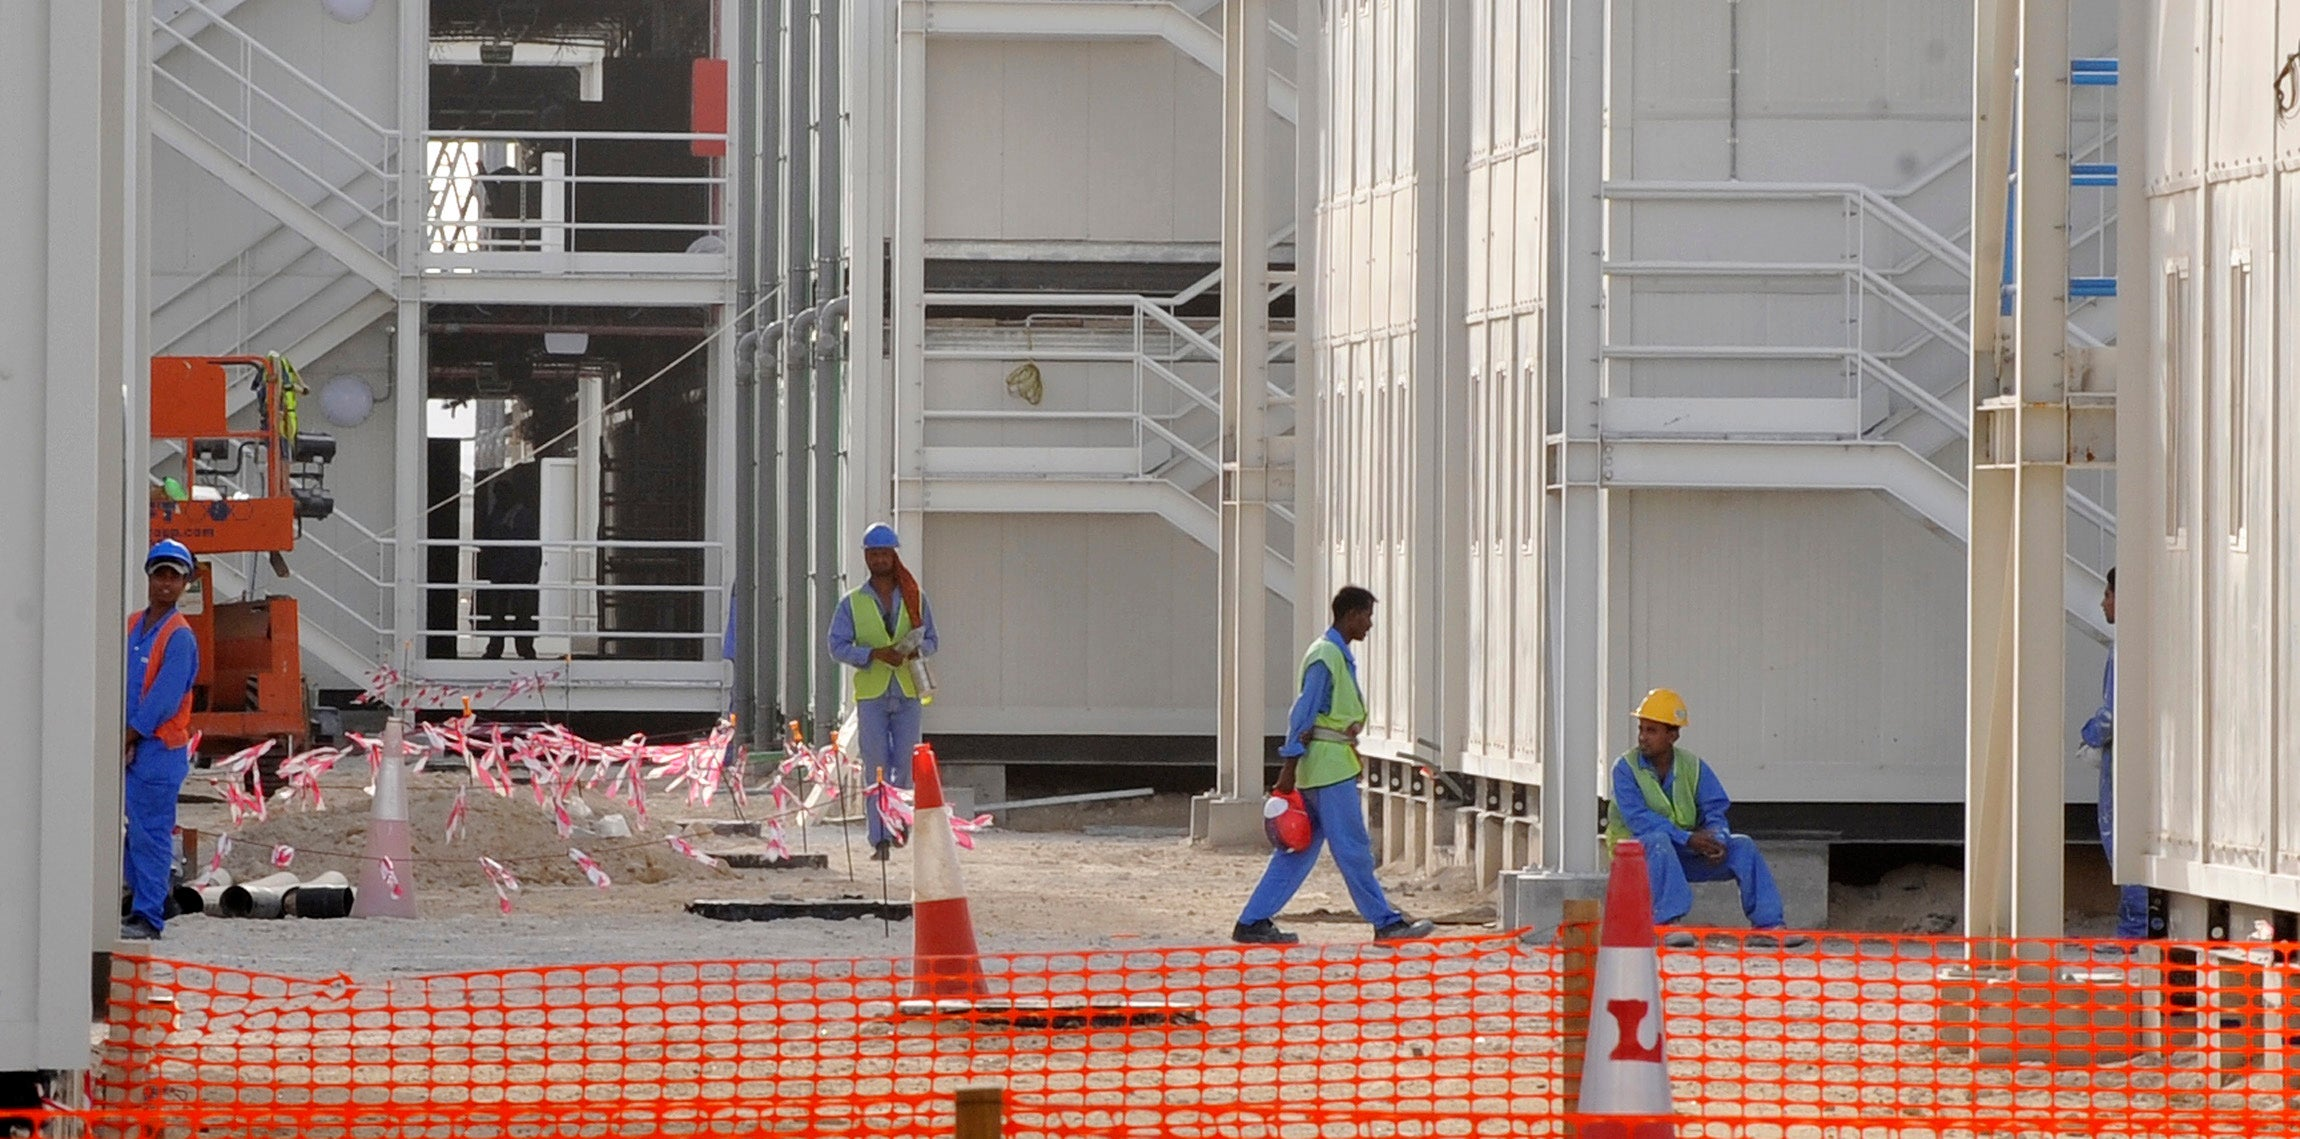 Museums and Universities Are Using Forced Labour to Build in Abu Dhabi